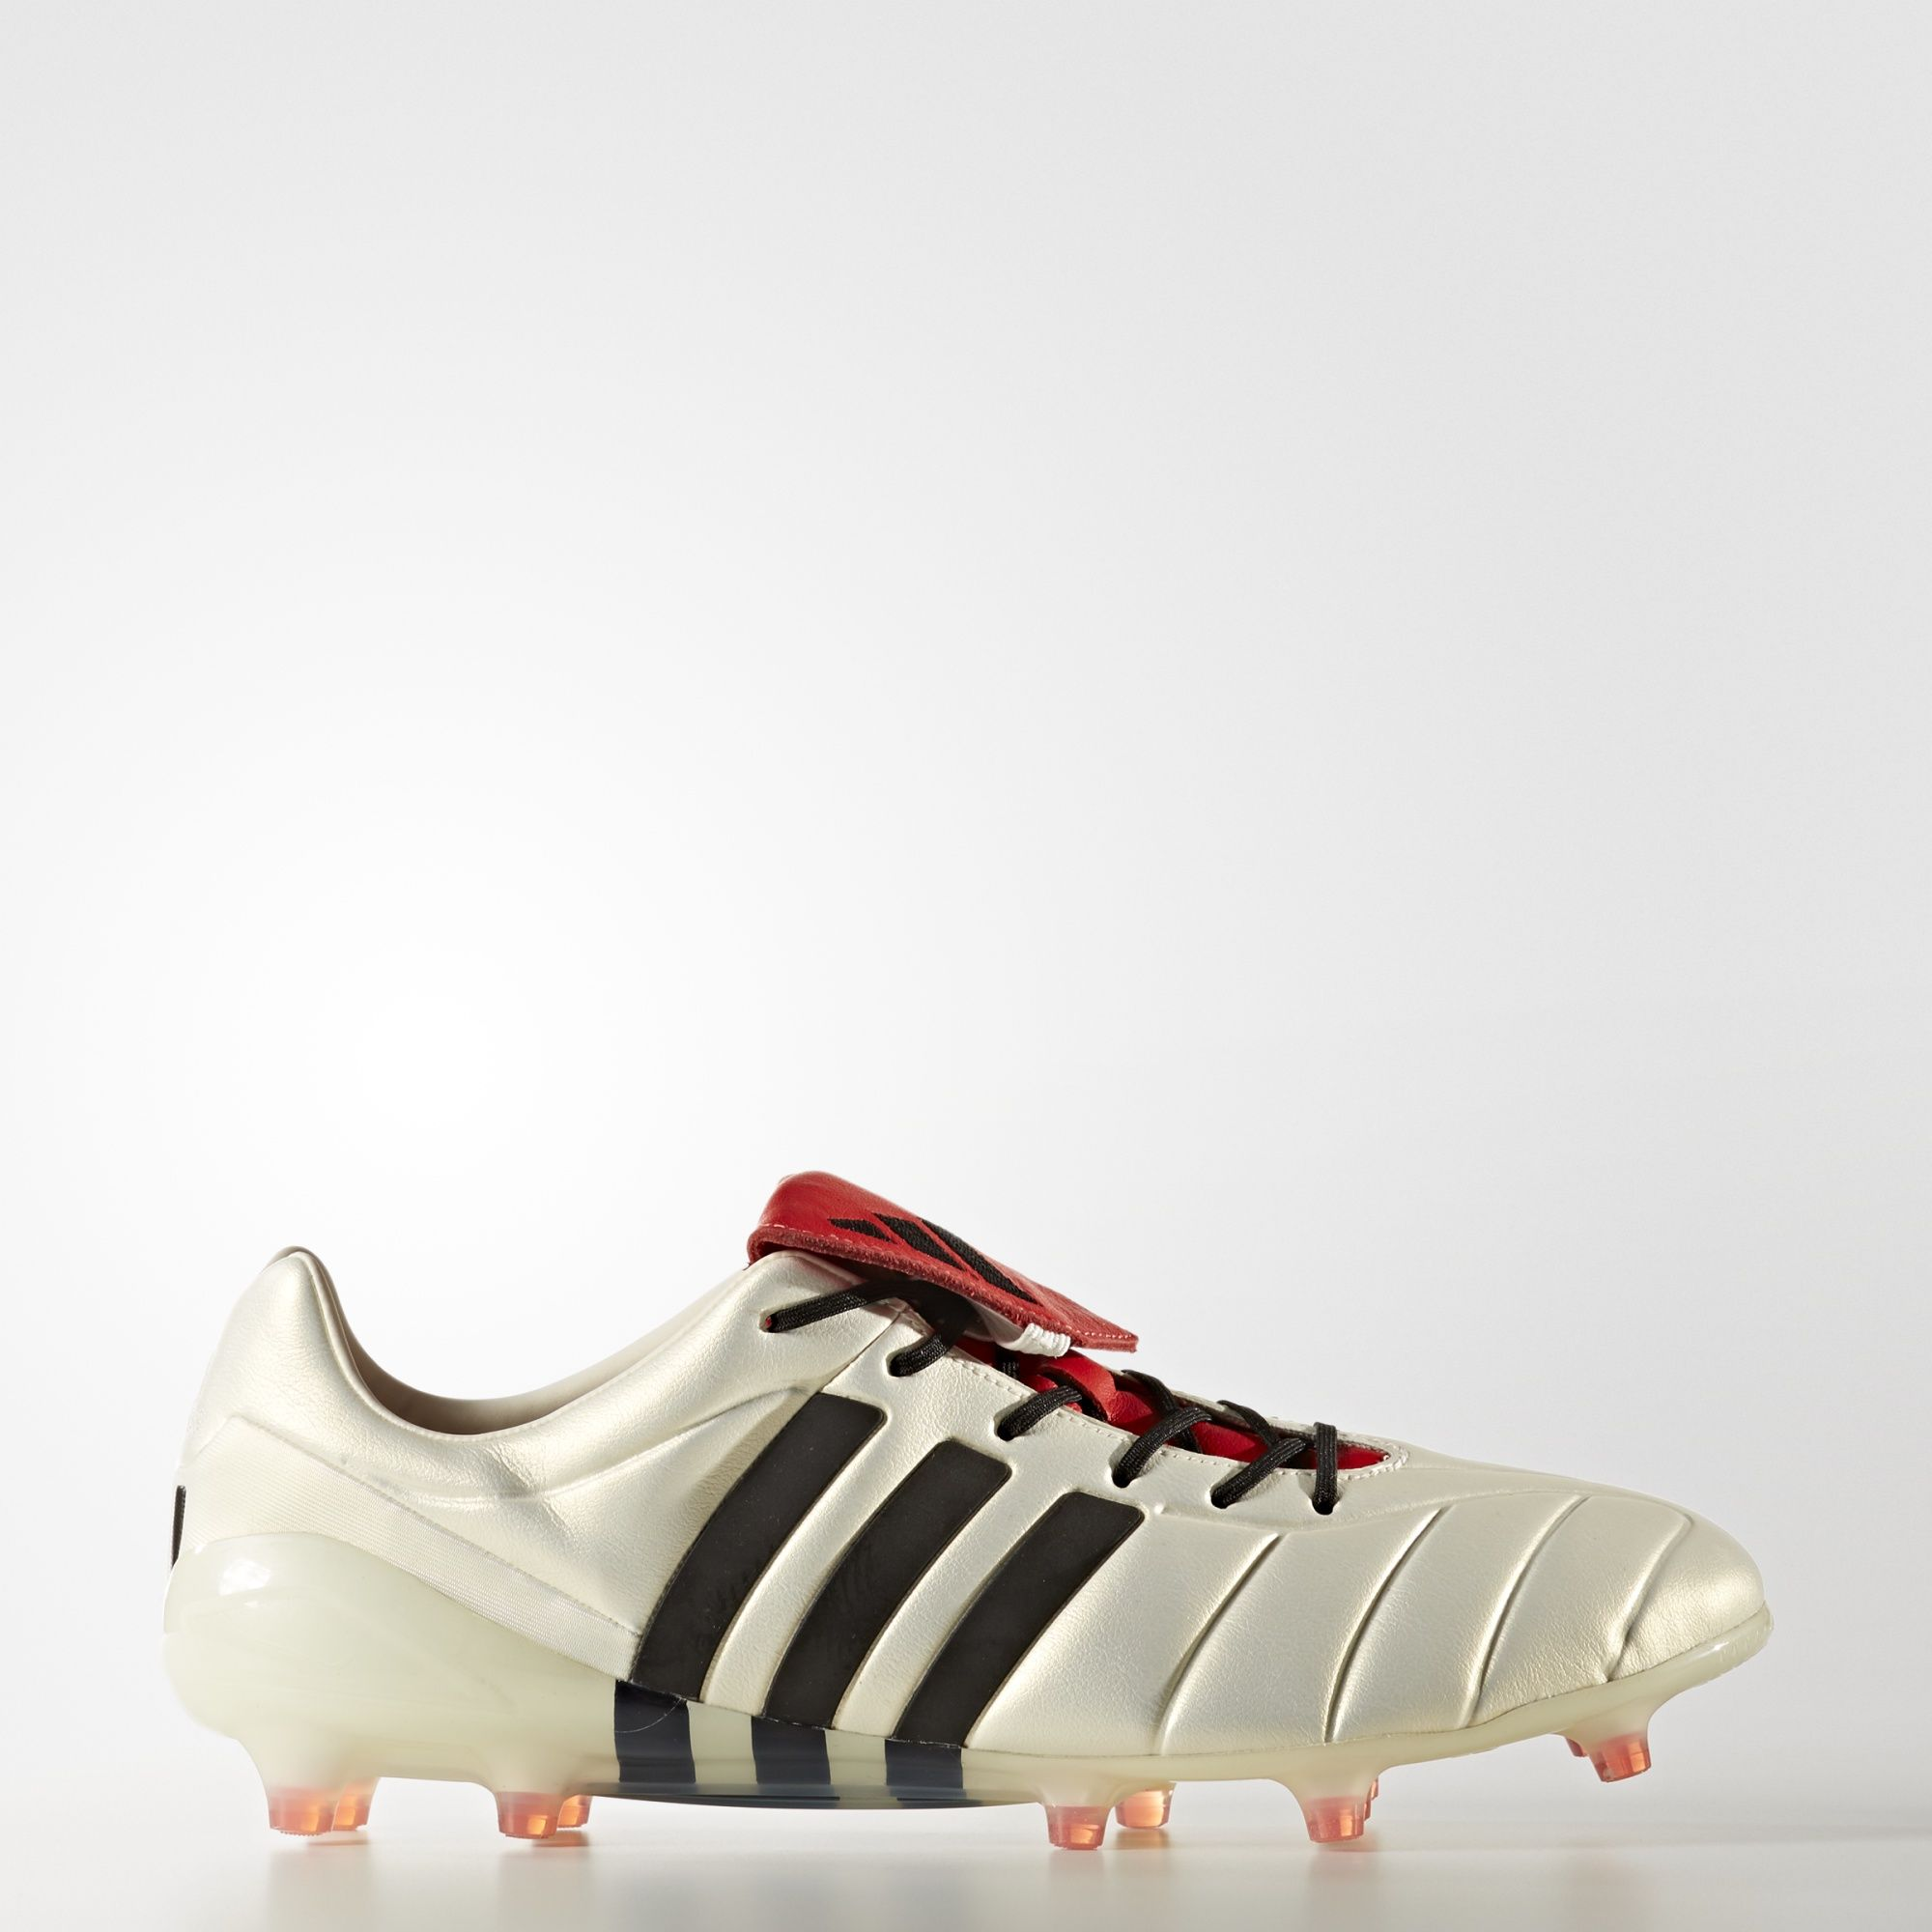 ba8b73213ff8 Click to enlarge image  adidas_predator_mania_champagne_firm_ground_boots_off_white_core_black_red_a.jpg  ...